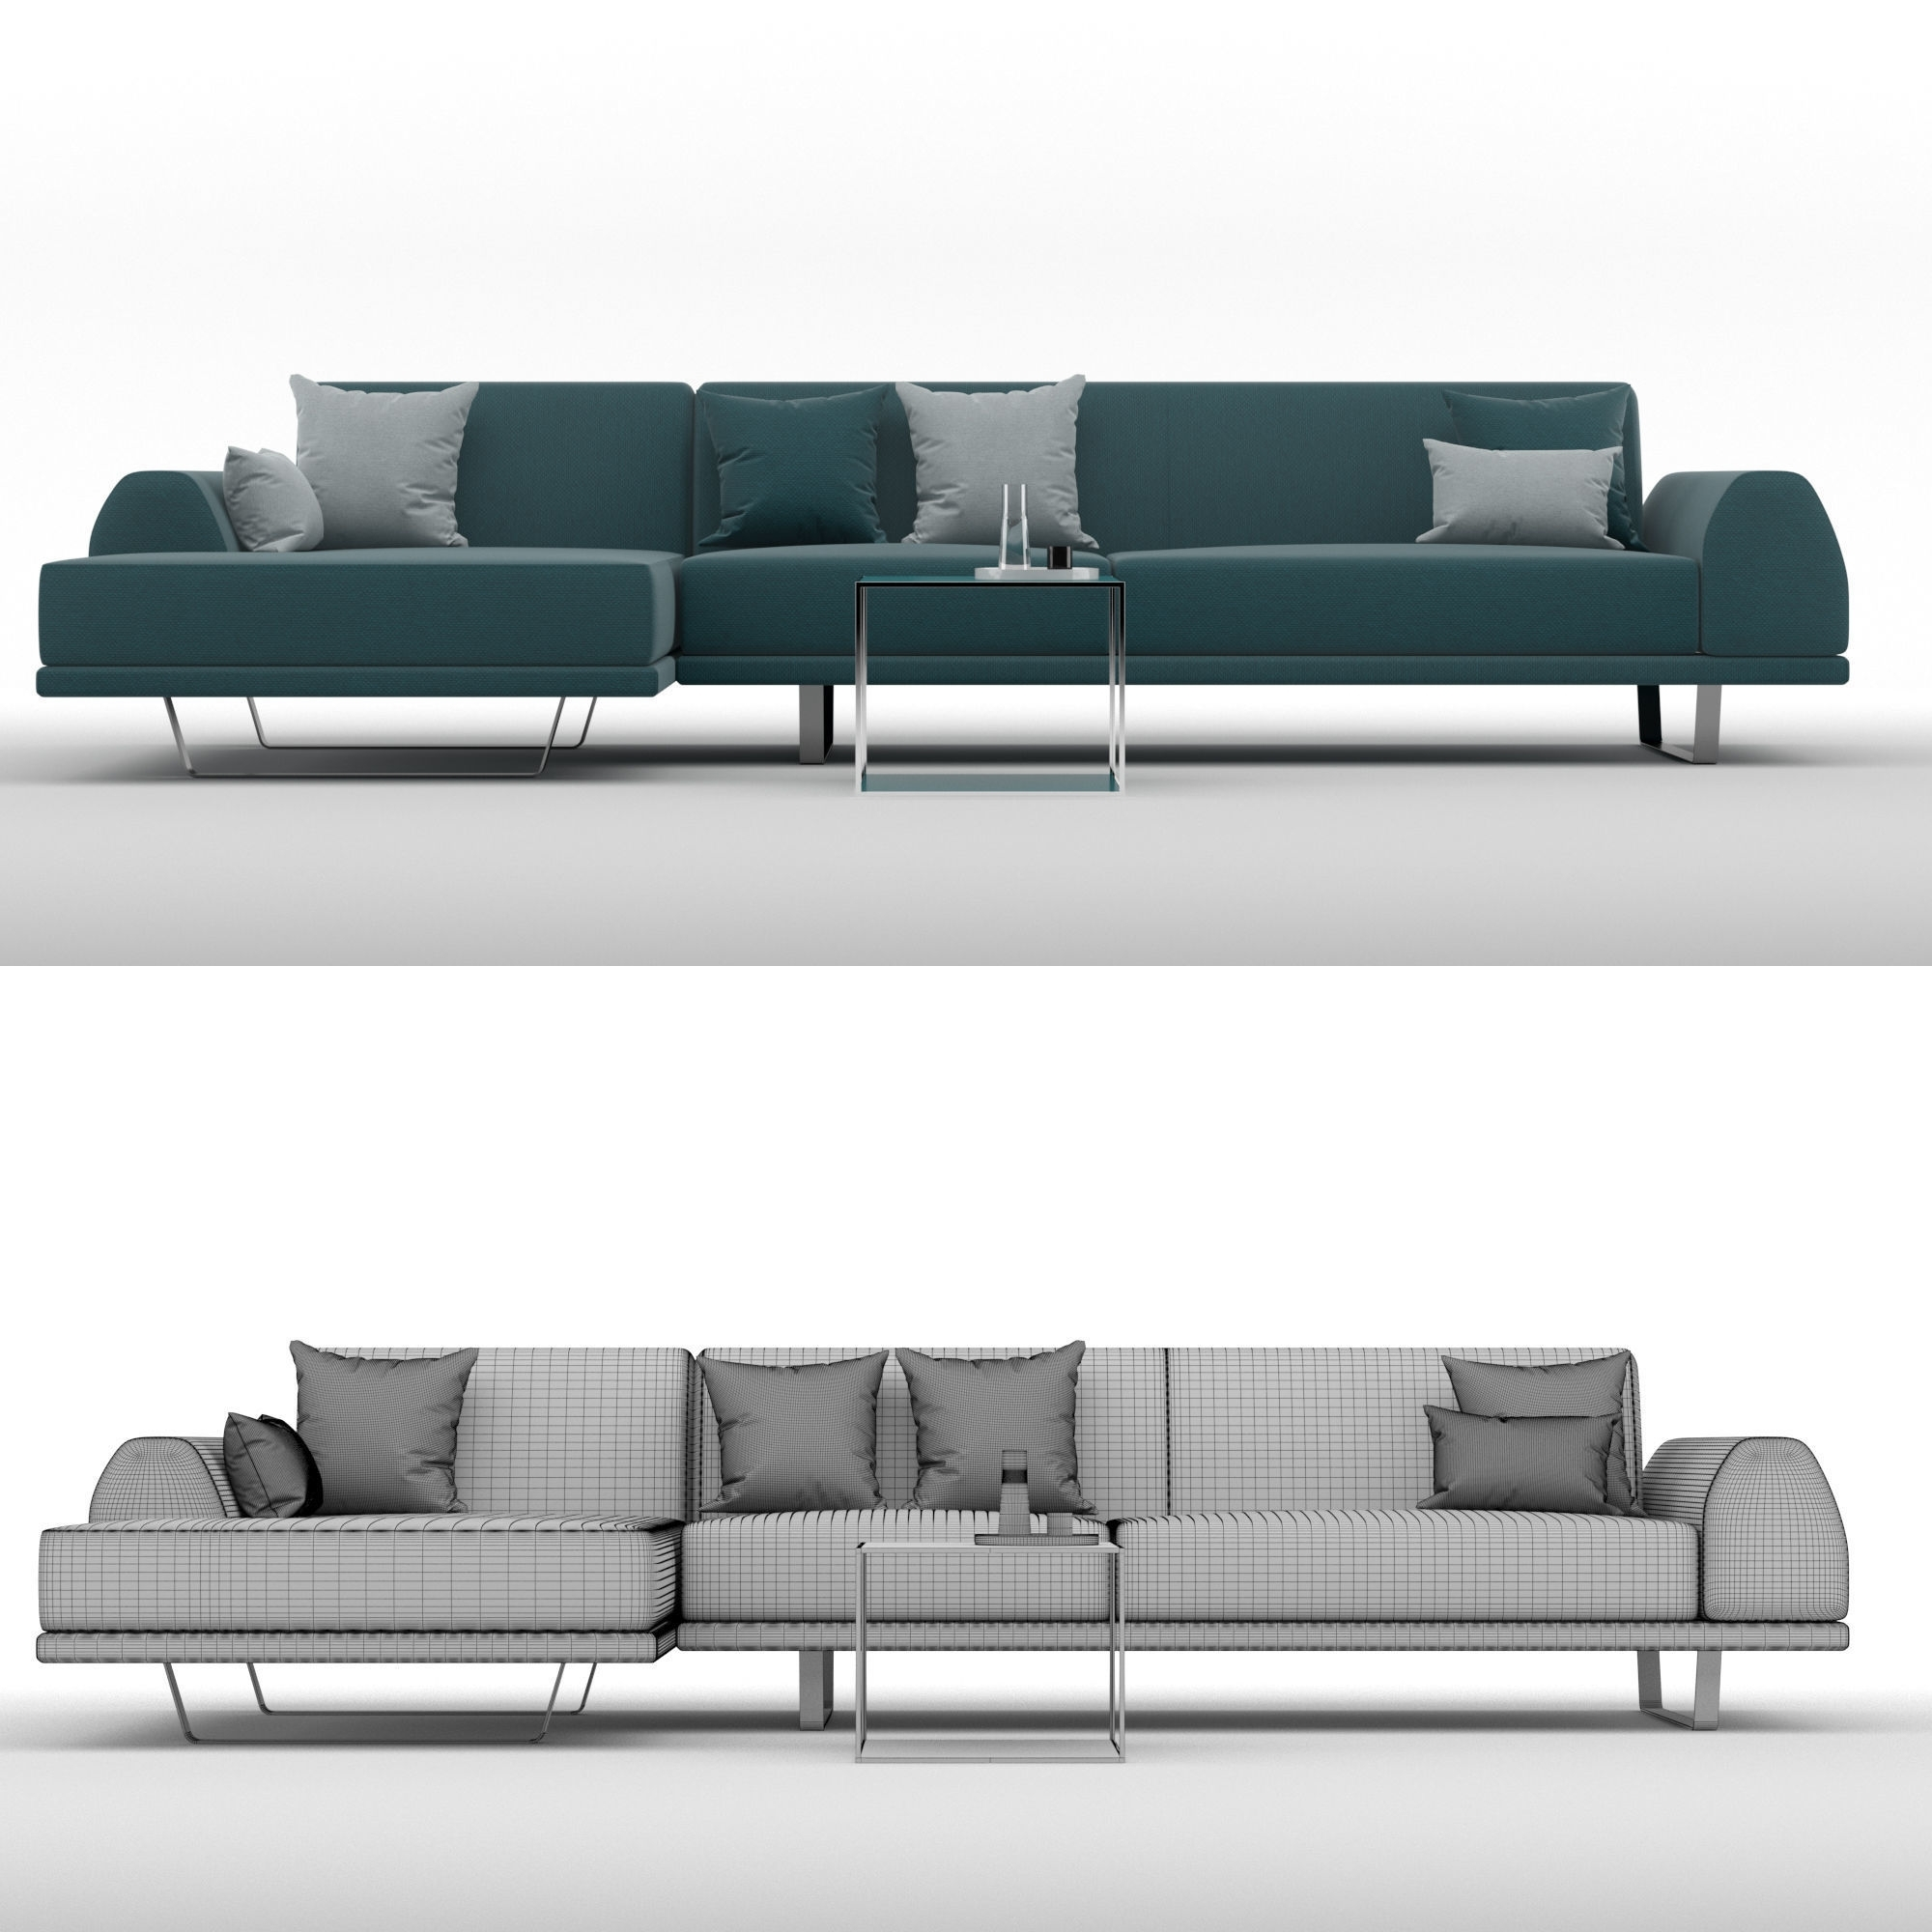 Cgtrader With Regard To 2019 Portland Sectional Sofas (View 1 of 20)